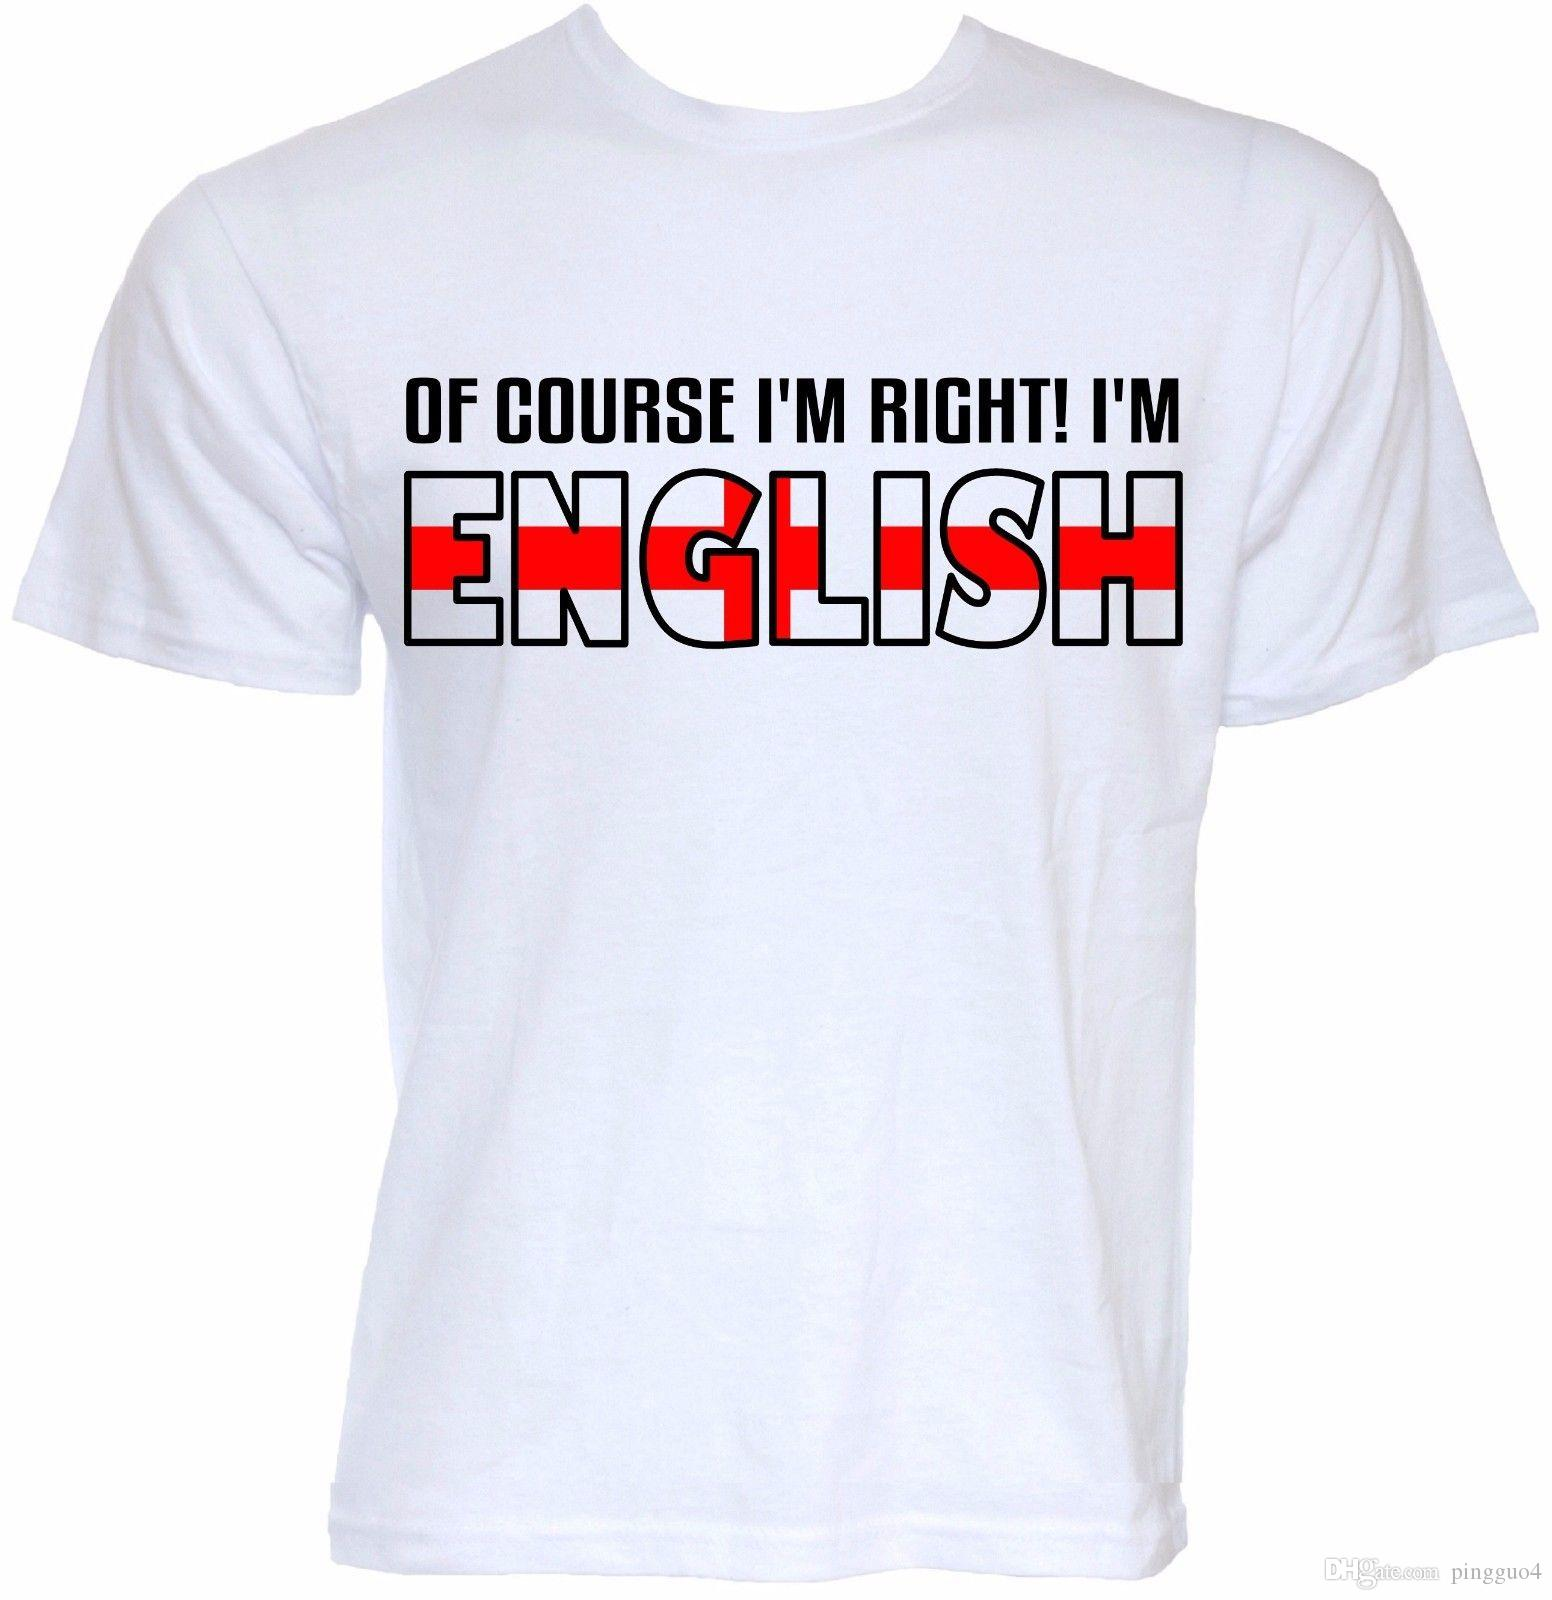 5460b578 MENS FUNNY COOL NOVELTY I'M ENGLISH ENGLAND FLAG SLOGAN JOKE BRITISH T- SHIRTS Summer T Shirt Brand Fitness Body Building